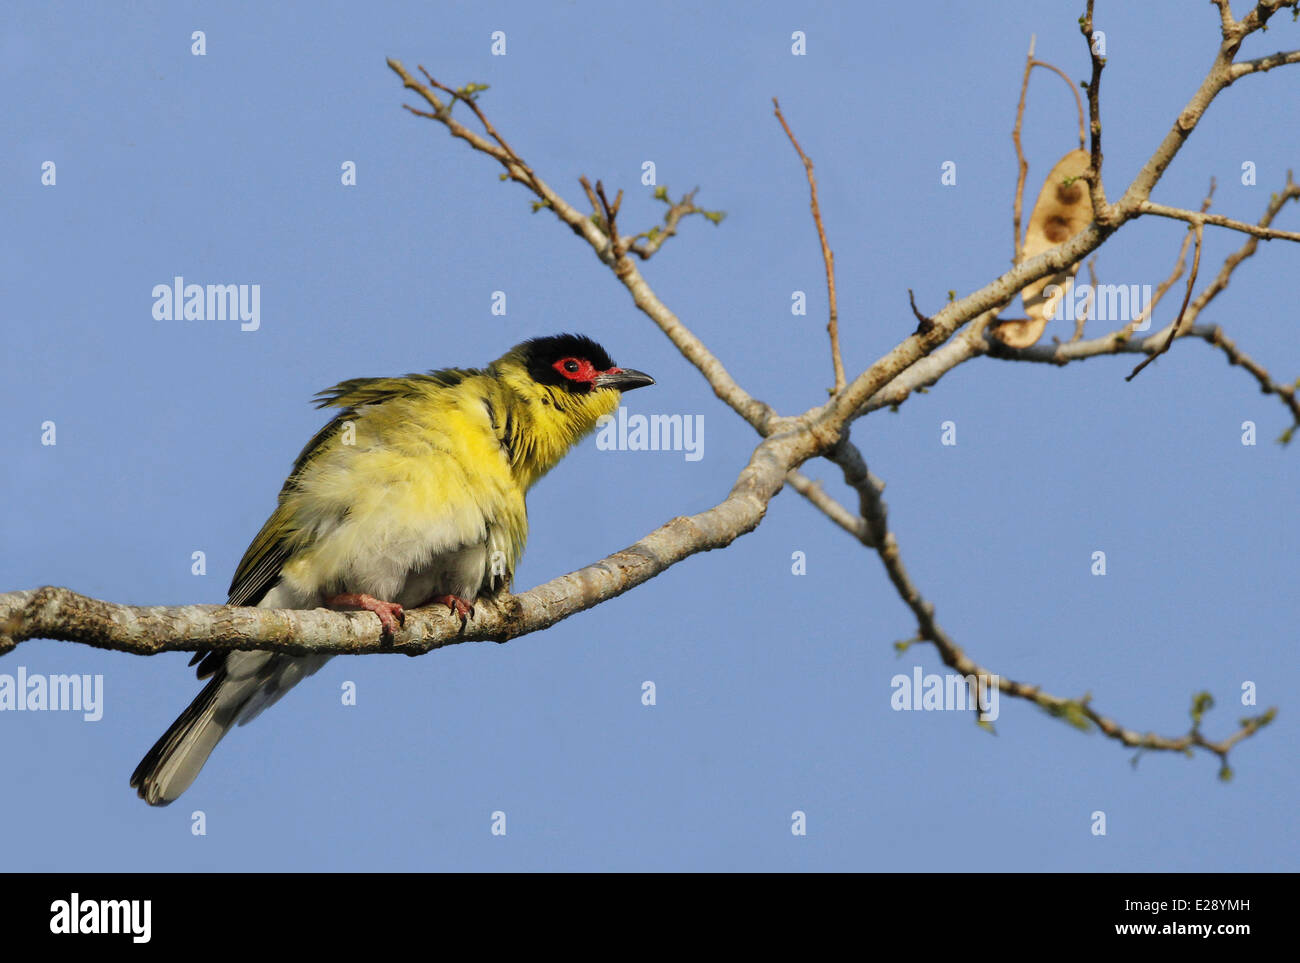 Australasian Figbird (Sphecotheres vieilloti flaviventris) 'Yellow Figbird' subspecies, adult male, perched on branch, Stock Photo